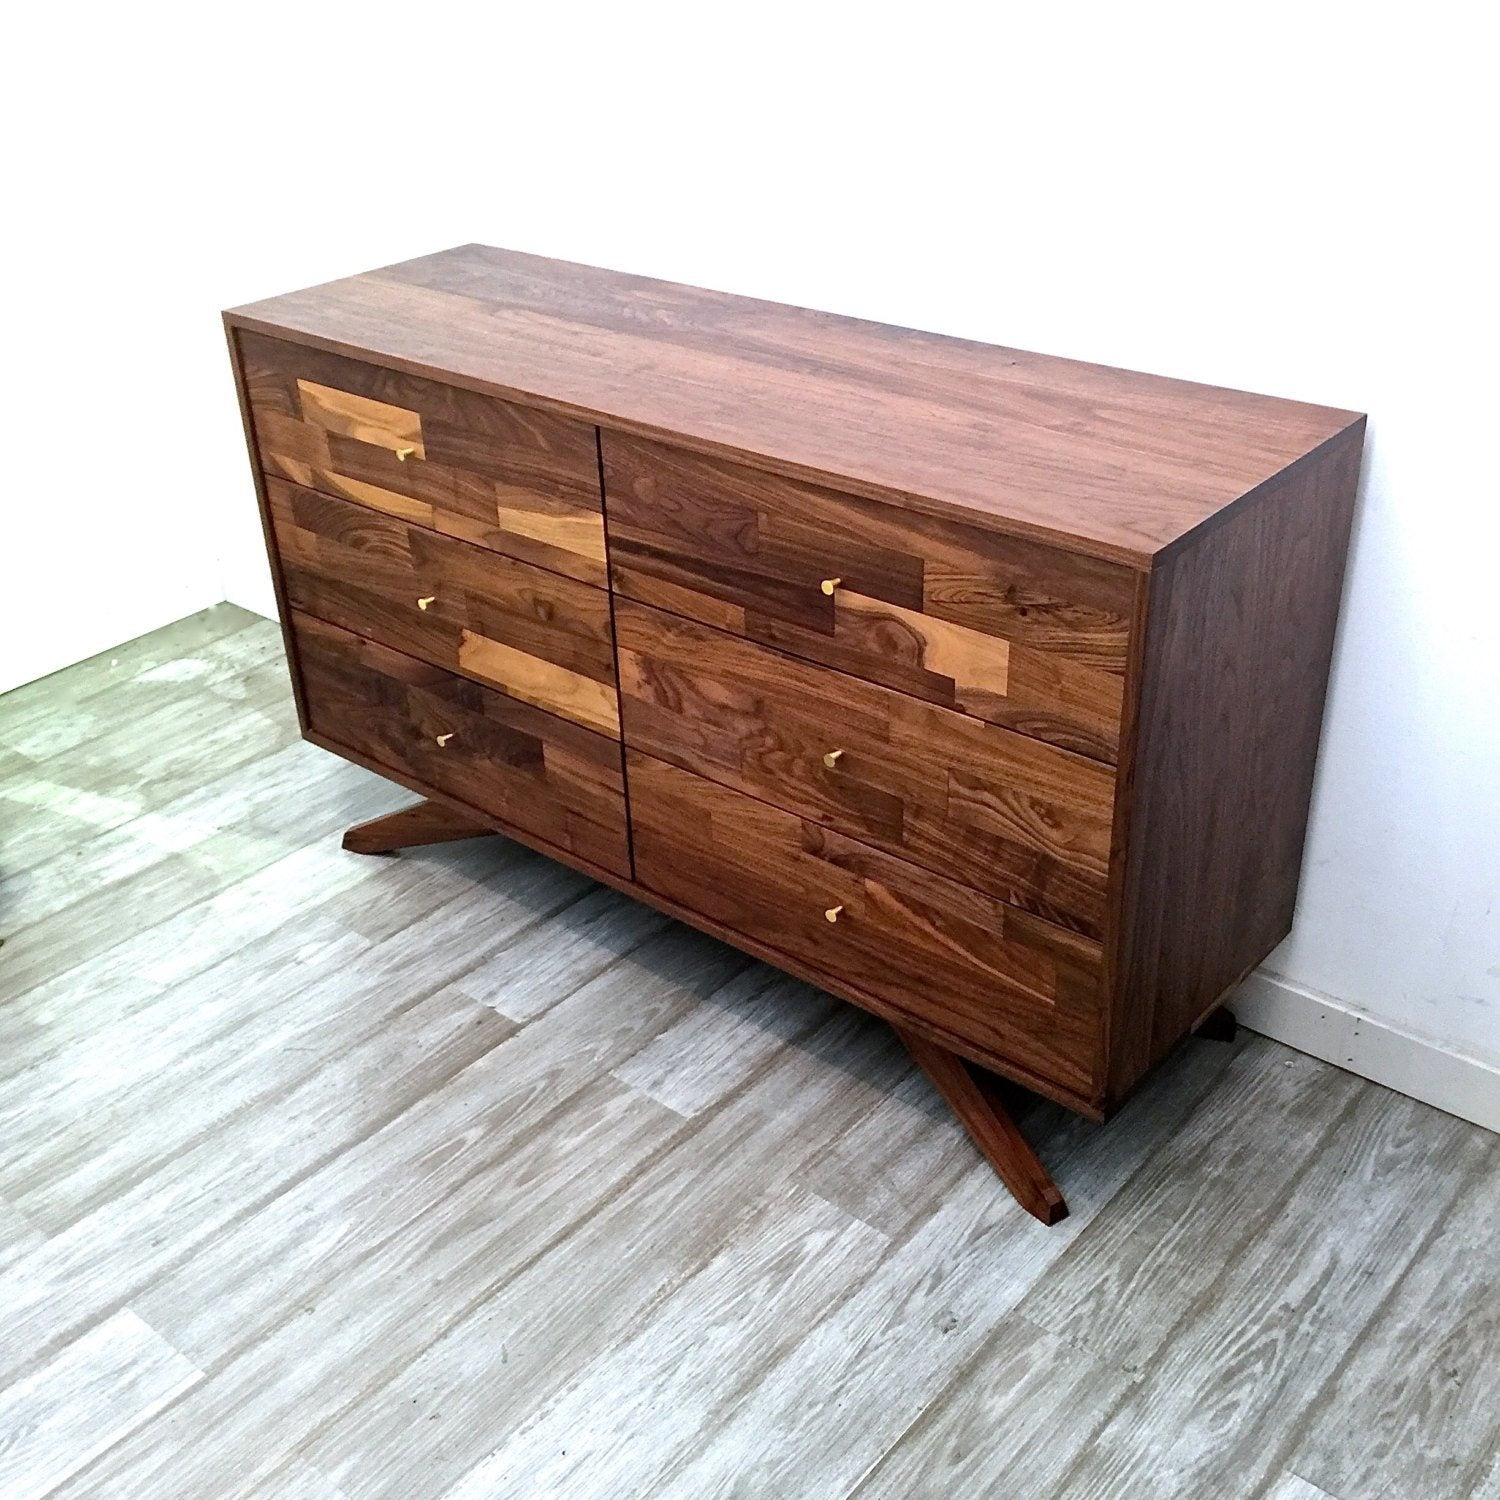 Divisadero Six Drawer Dresser - JeremiahCollection - 5